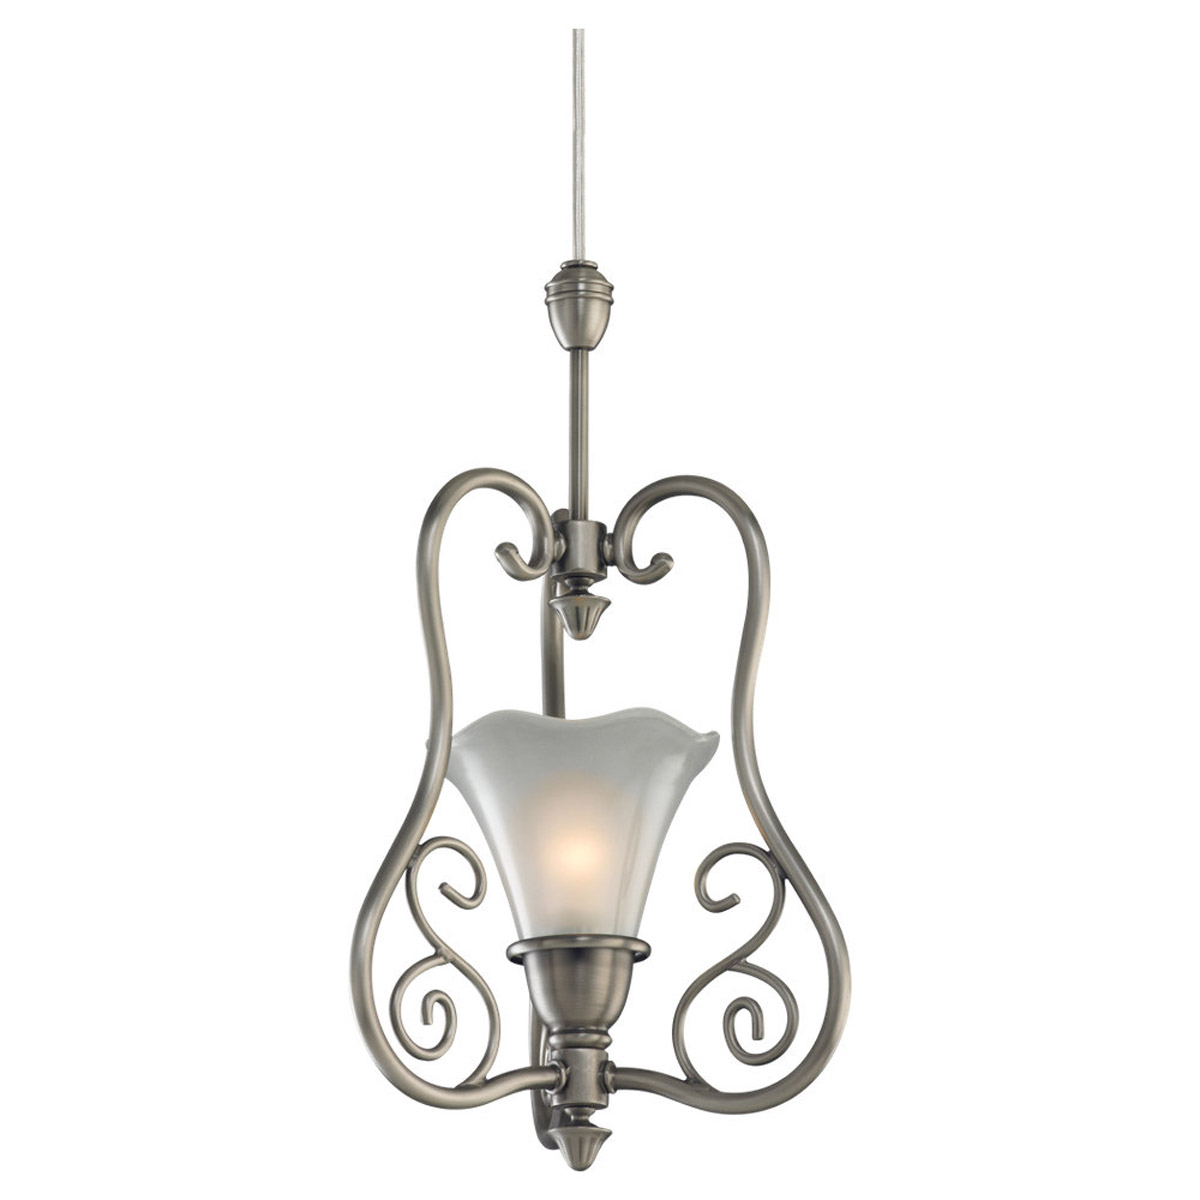 Sea Gull Lighting Trudy 1 + 1 Light Rail / Ceiling Pendant in Antique Brushed Nickel 94565-965